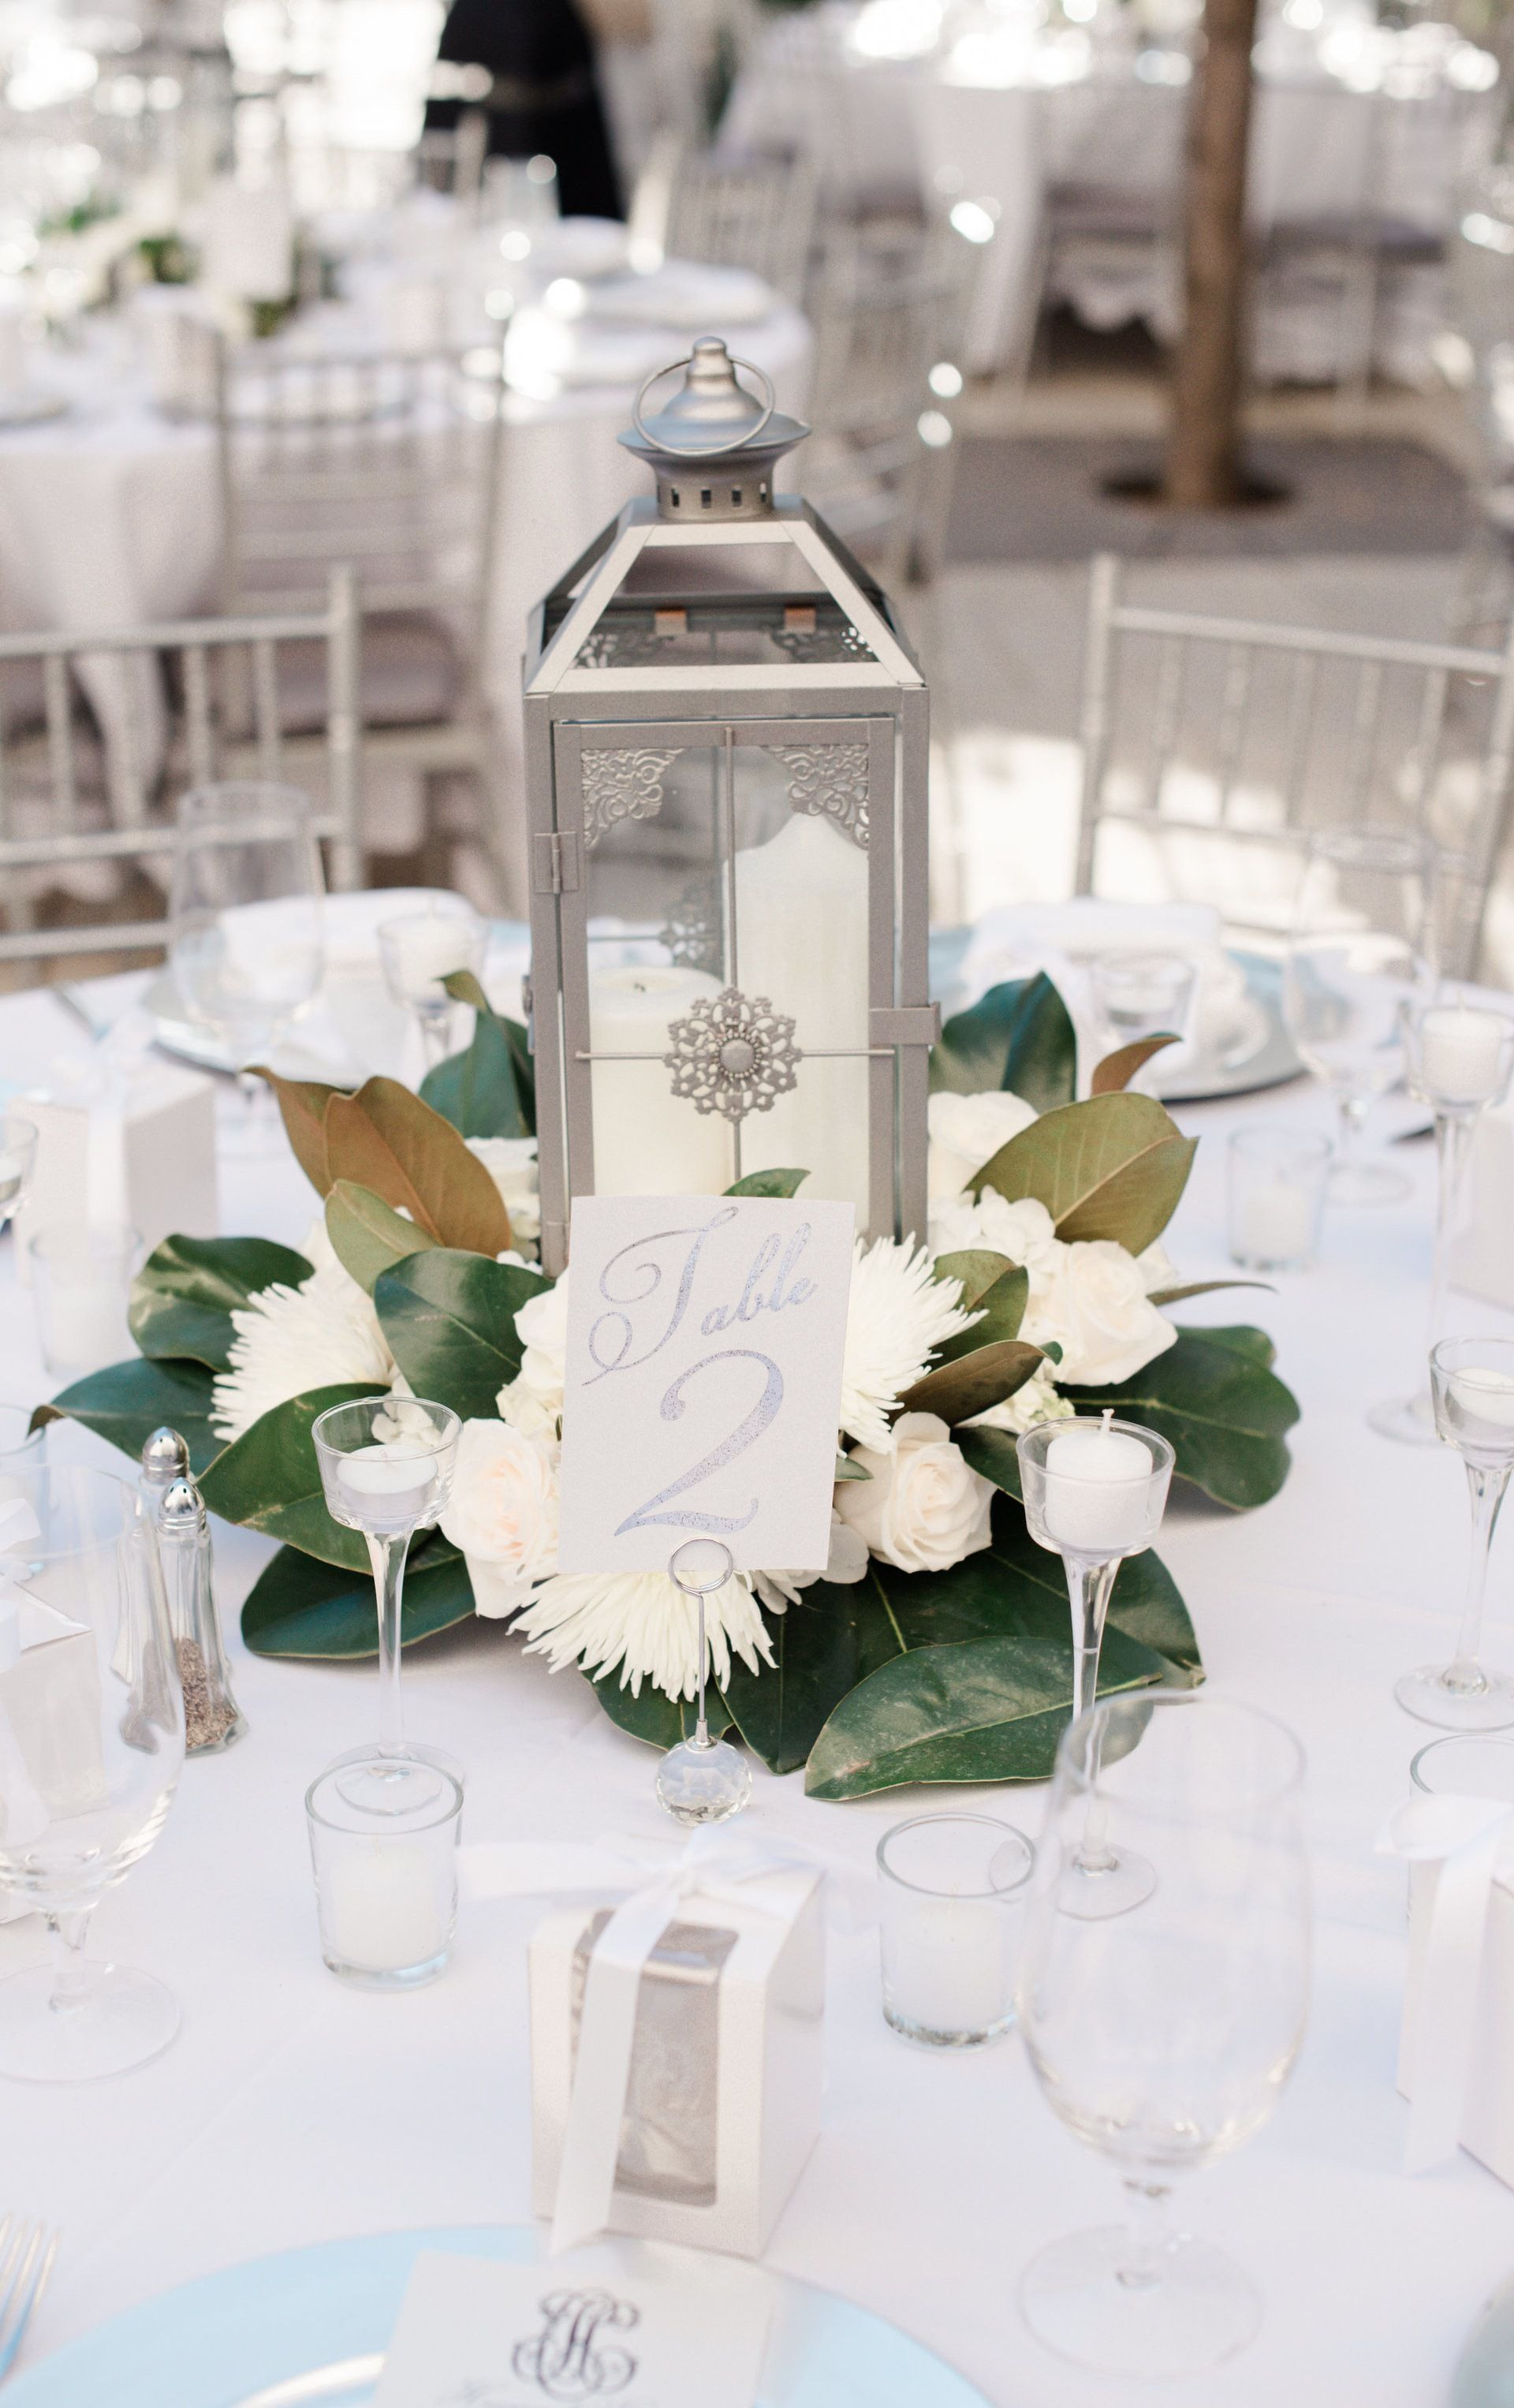 rustic wood flower vases of 47 vase centerpiece ideas the weekly world with regard to vase centerpiece ideas elegant 40 tall table elegant tall vase centerpiece ideas vases flower water of vase centerpiece ideas